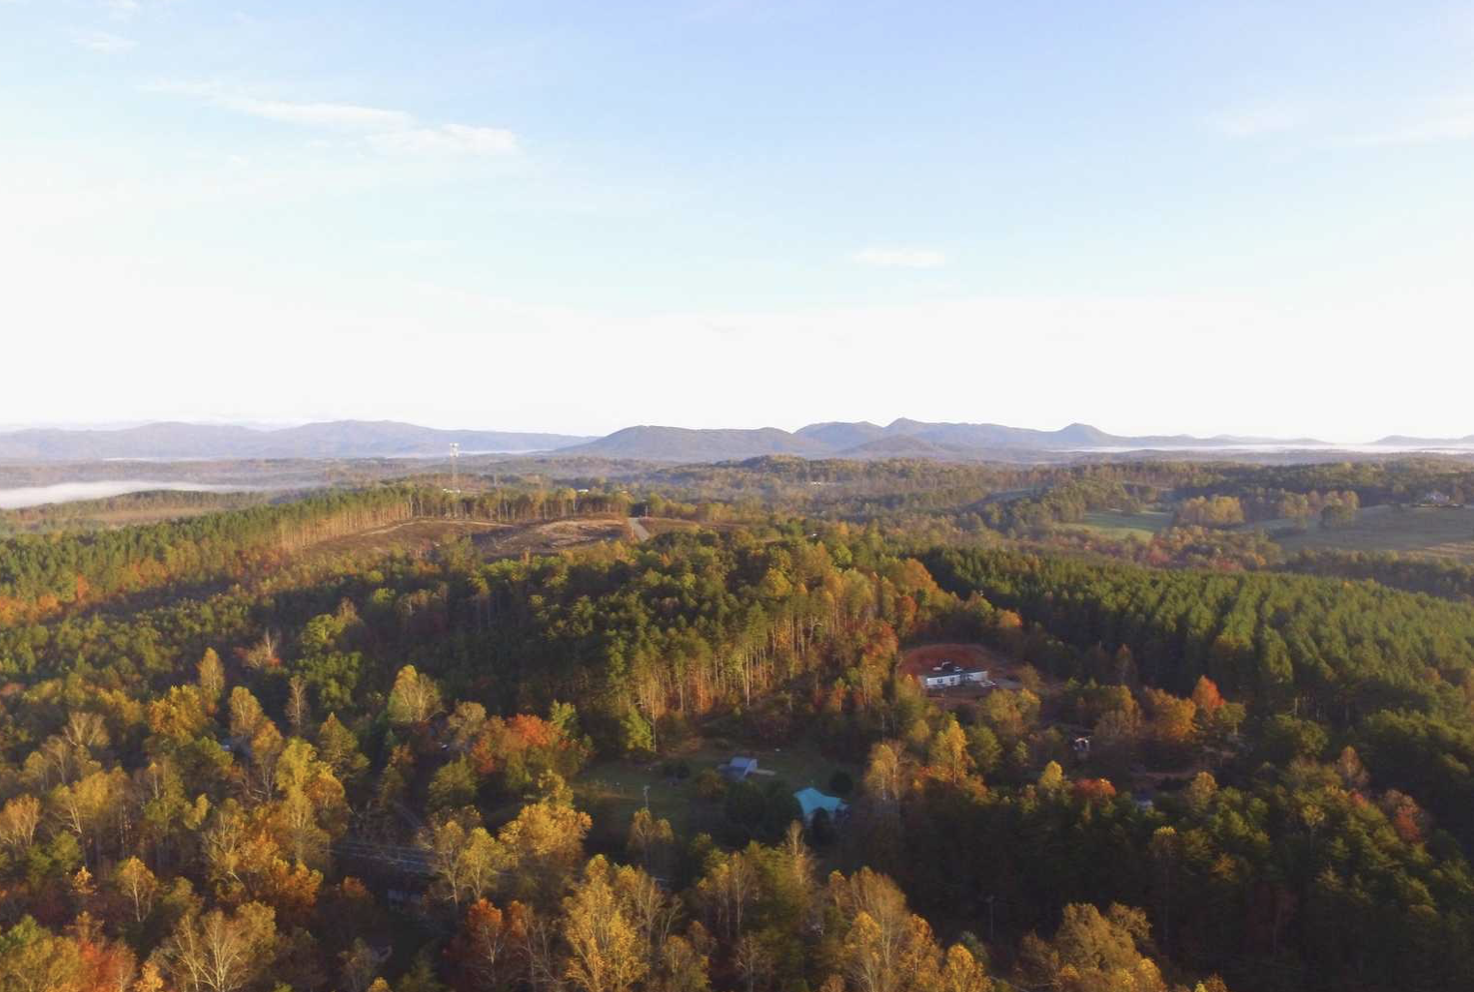 aerial view of campground in the fall with mountains in distance